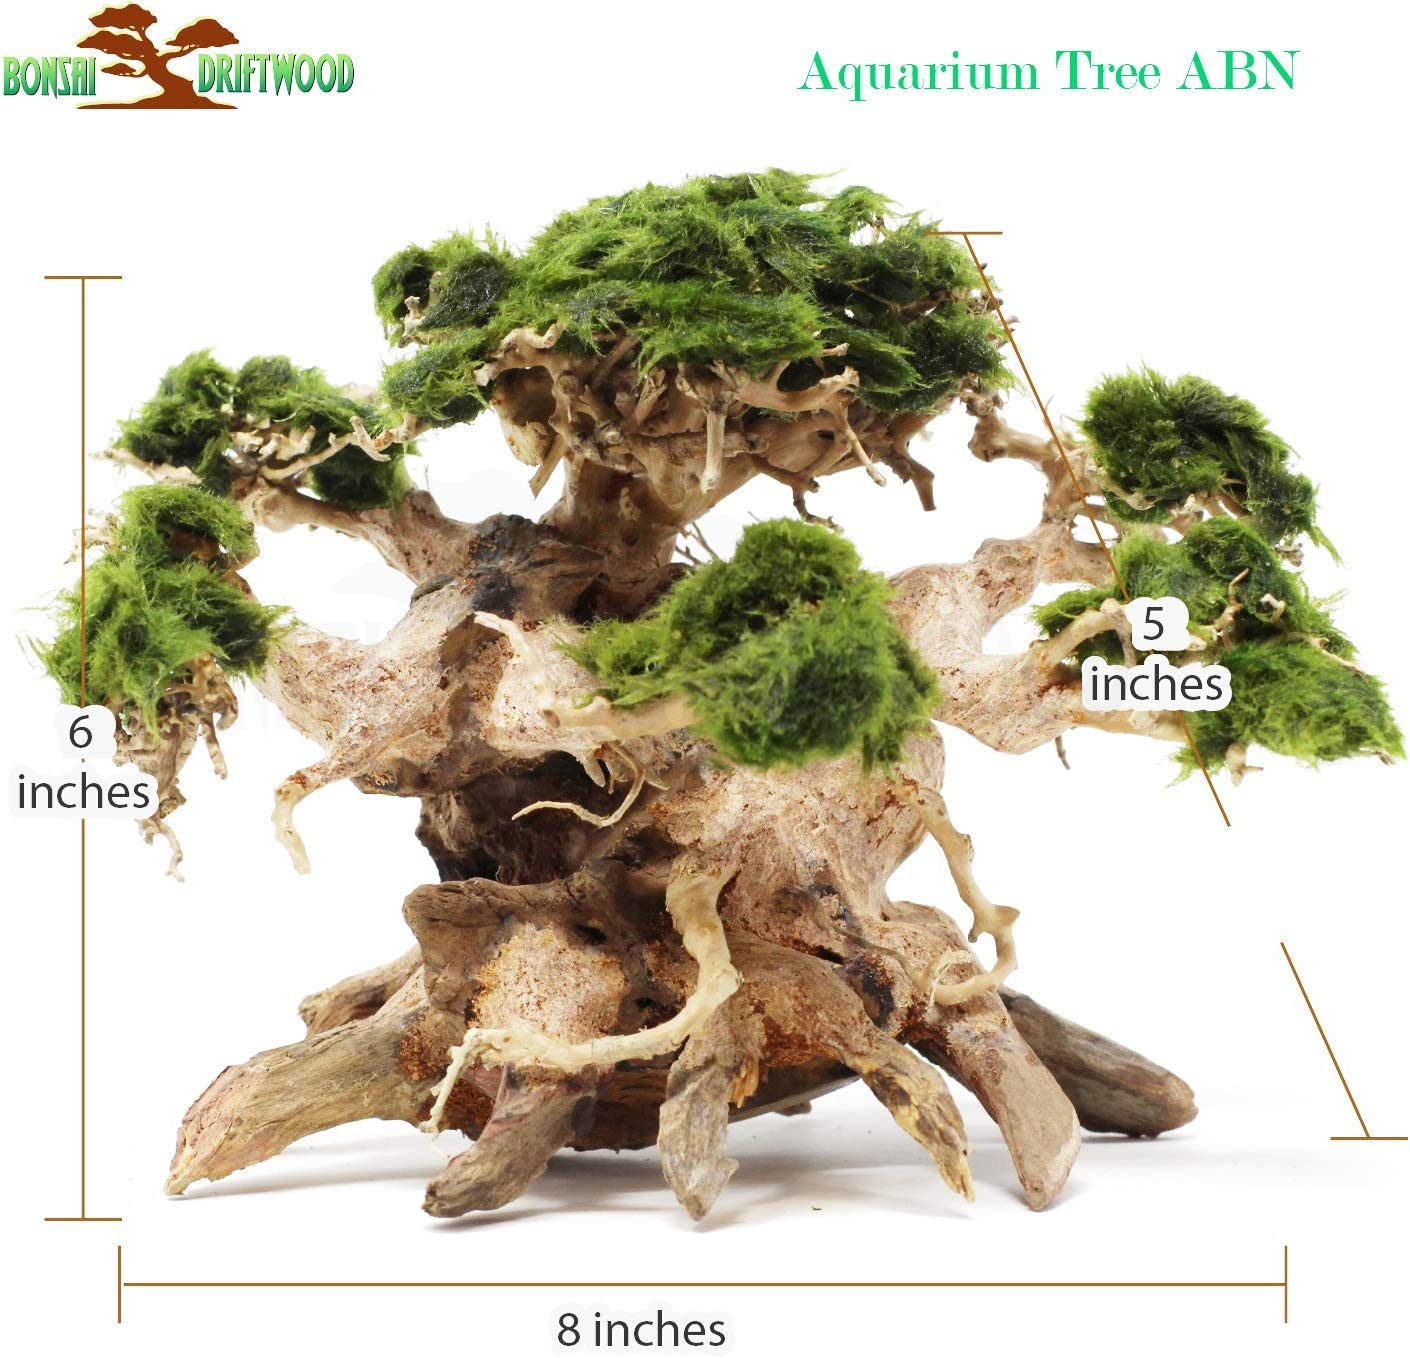 Bonsai Driftwood Aquarium Tree Abn 6 Inch Height Natural Handcrafted Fish Tank Decoration Helps Balance Water Ph Levels Stabilizes Environments Easy To Install Amazon Com Grocery Gourmet Food